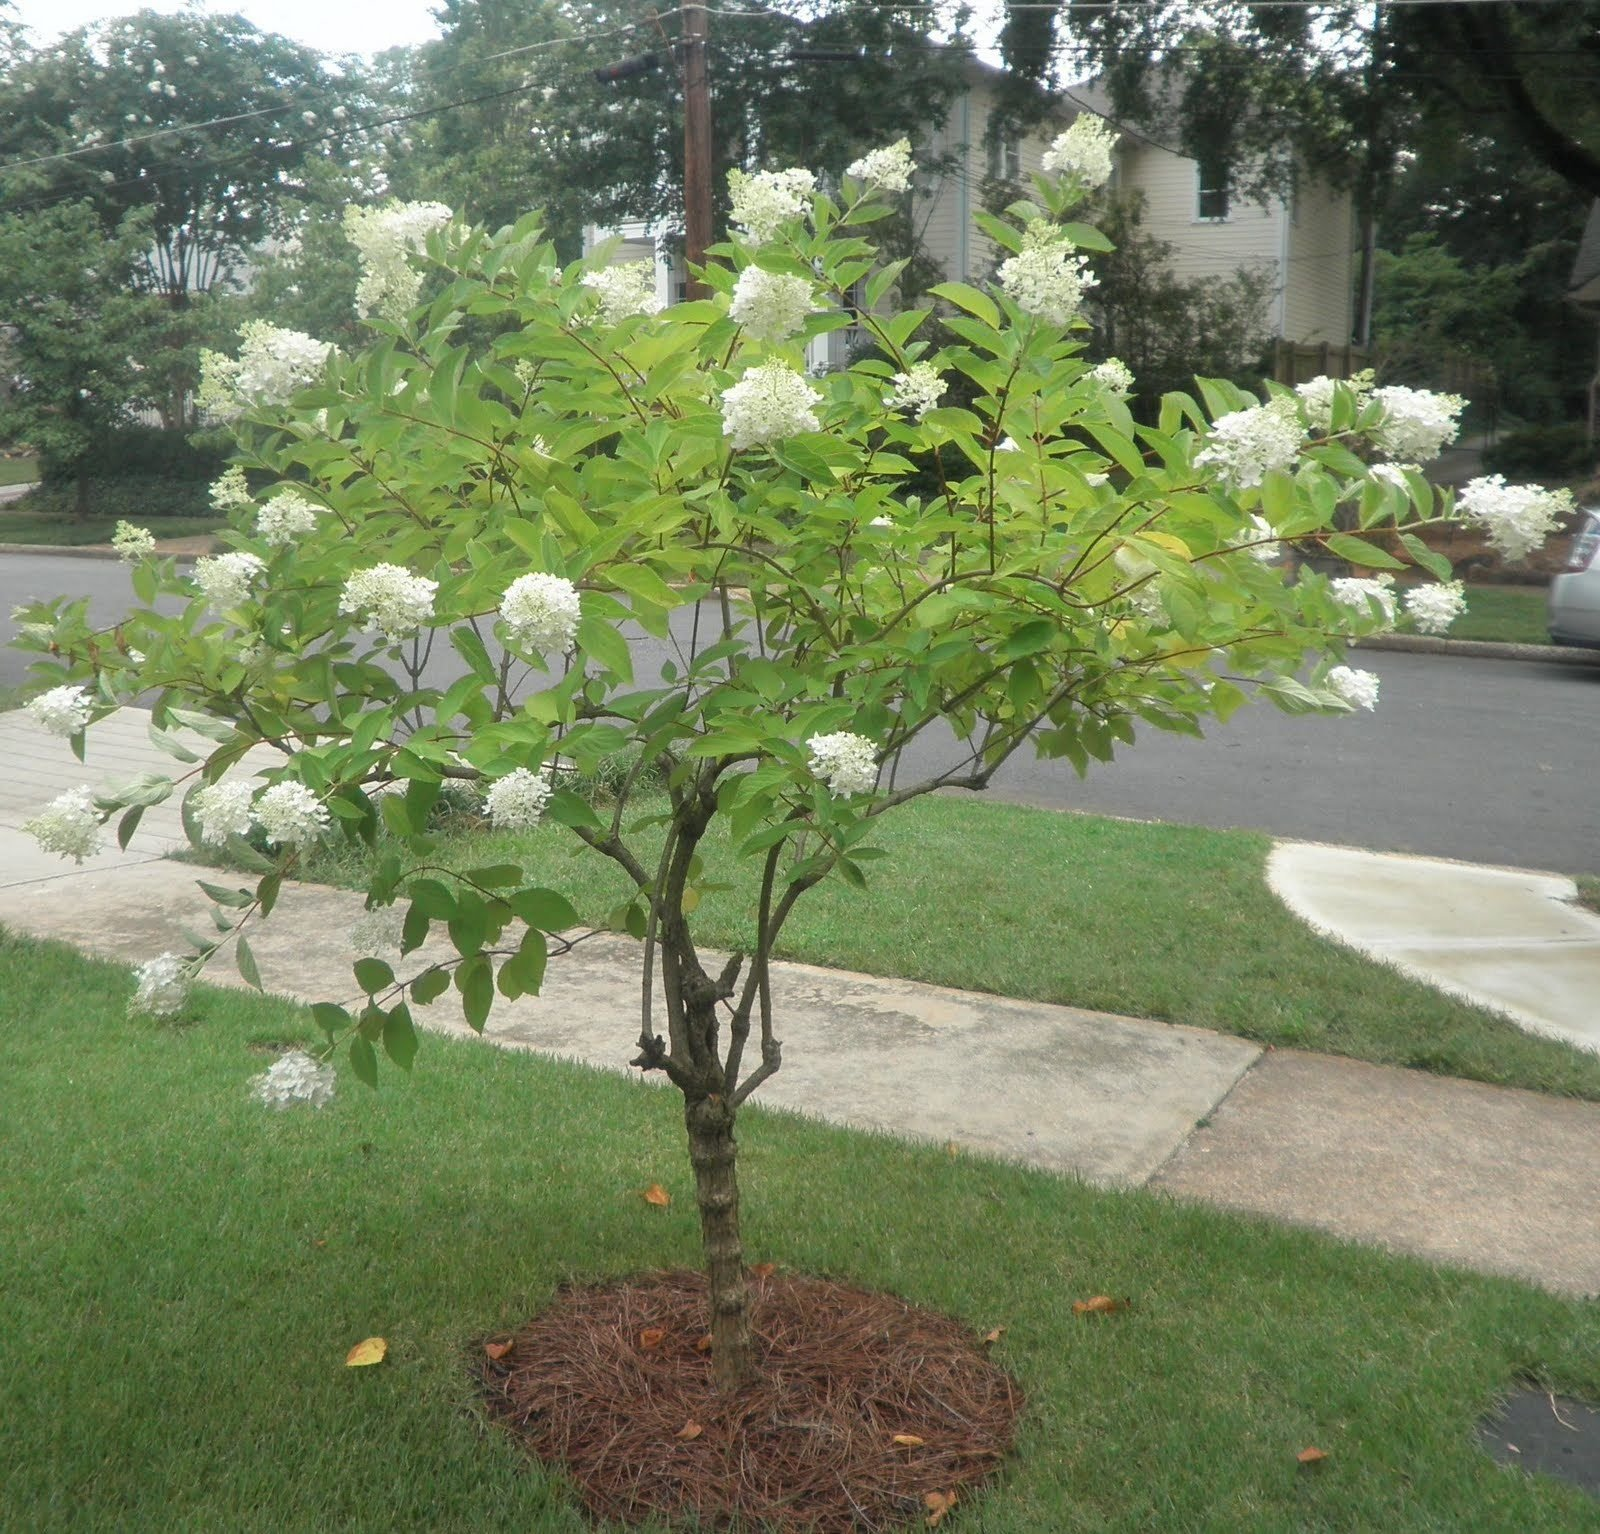 Pee Gee Hydrangea Healthy Shrub 1 Plant in 1 Gallon Fast Growing #GS04 by Gseeds